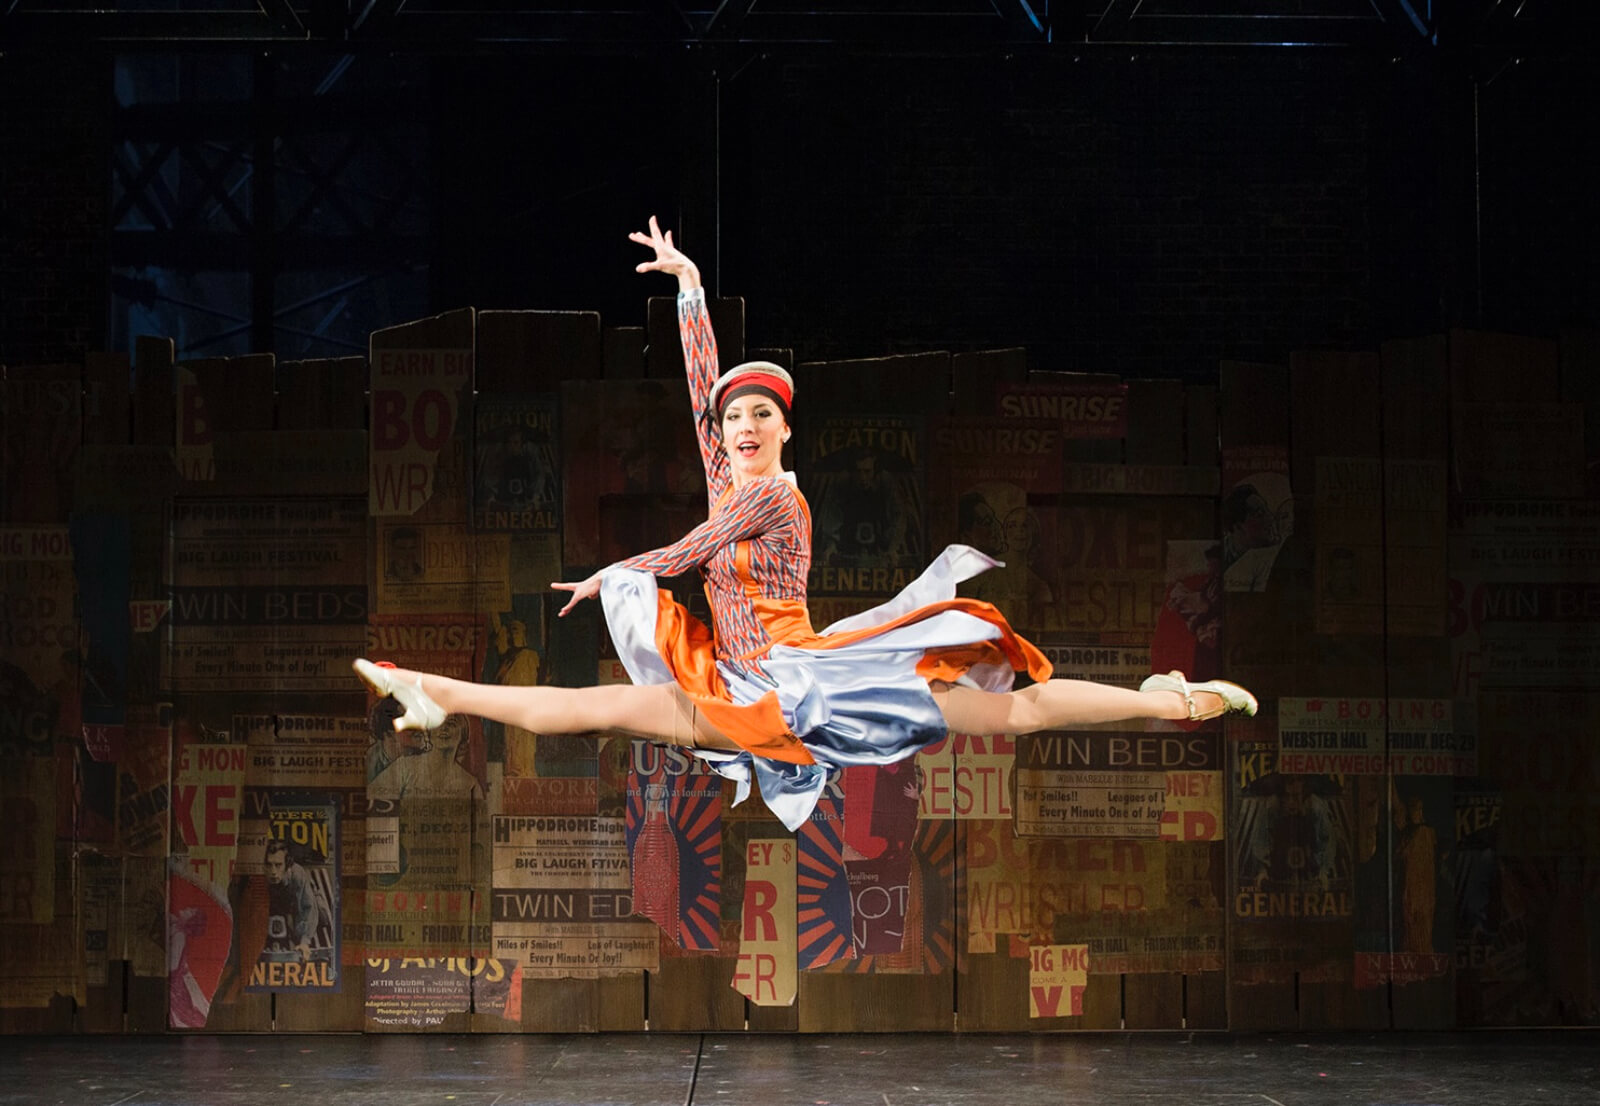 Brittany Marcin Maschmeyer dressed in a multi-colored dress does a split leap in front of a signage covered backdrop.